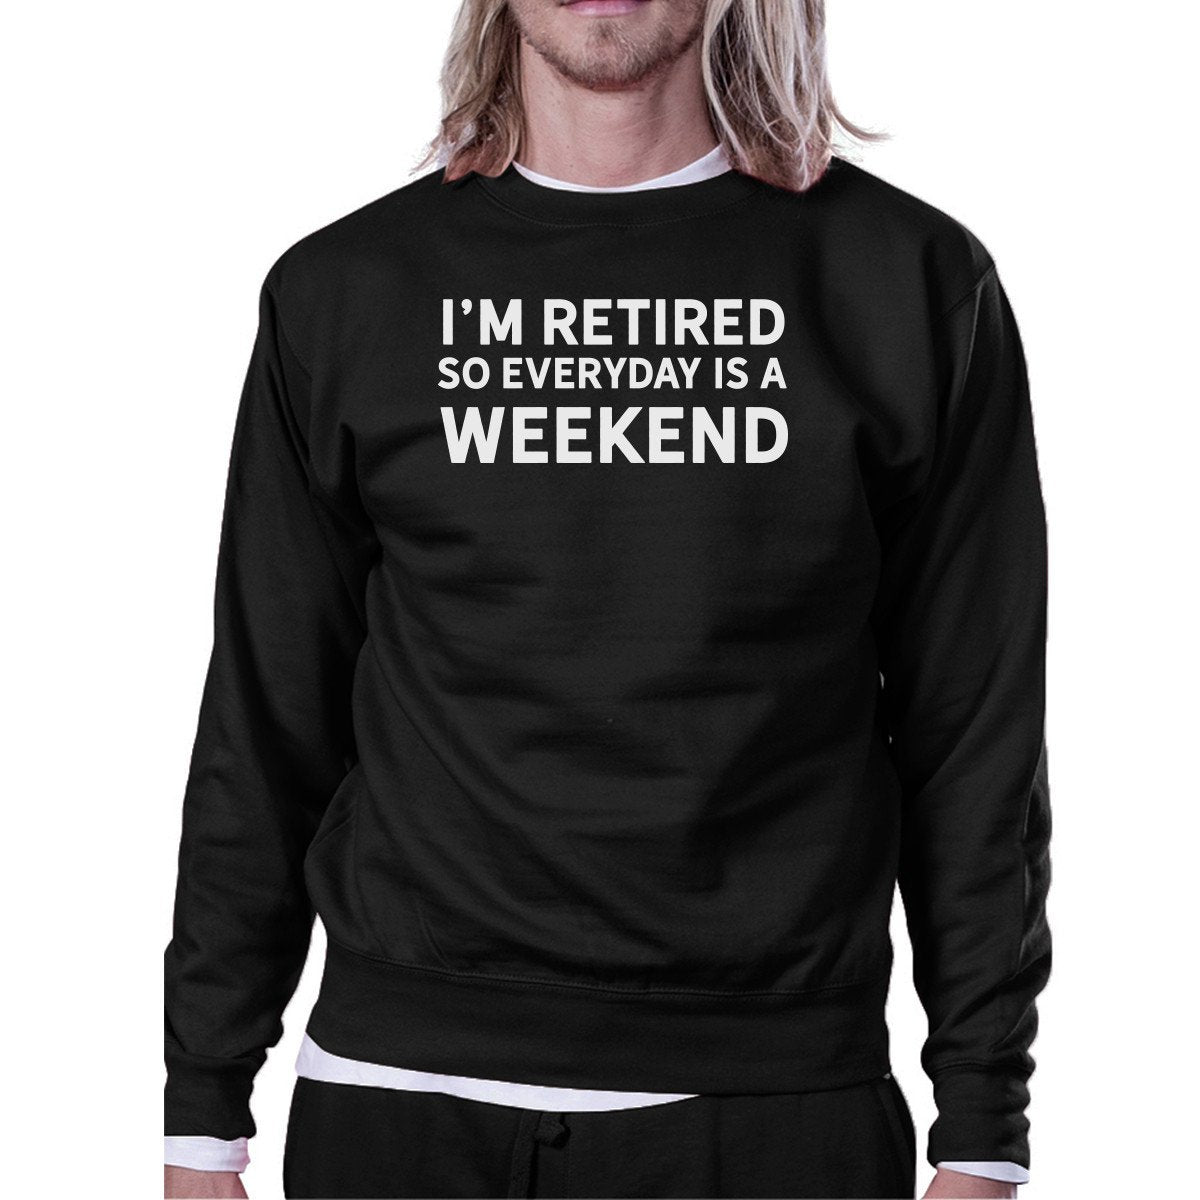 Everyday Is A Weekend Sweatshirt Cute Holiday Gift For Grandparents